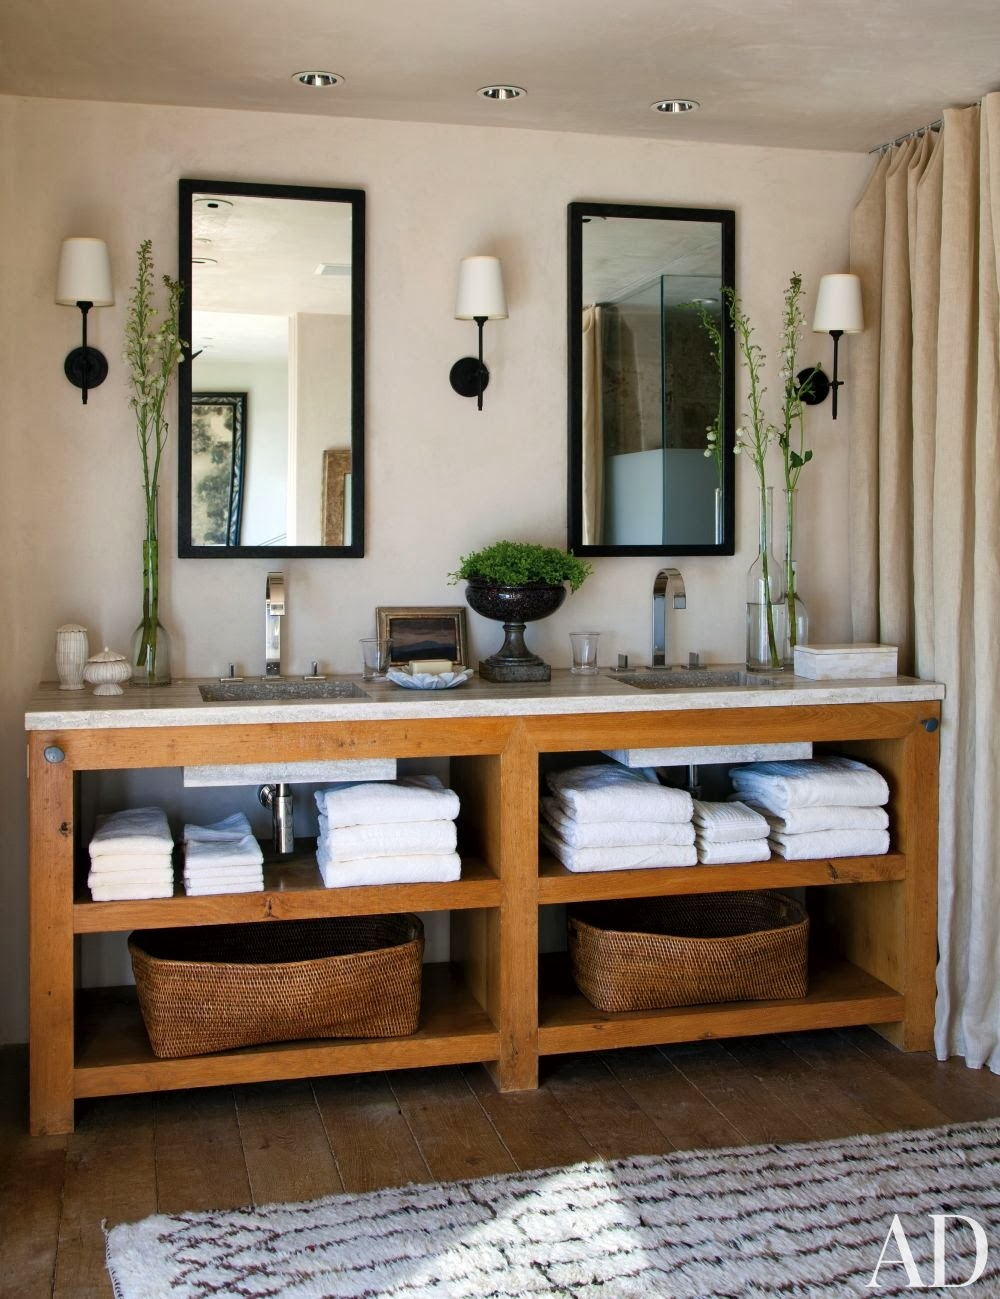 Refresheddesigns seven stunning modern rustic bathrooms - Master bath vanity design ideas ...